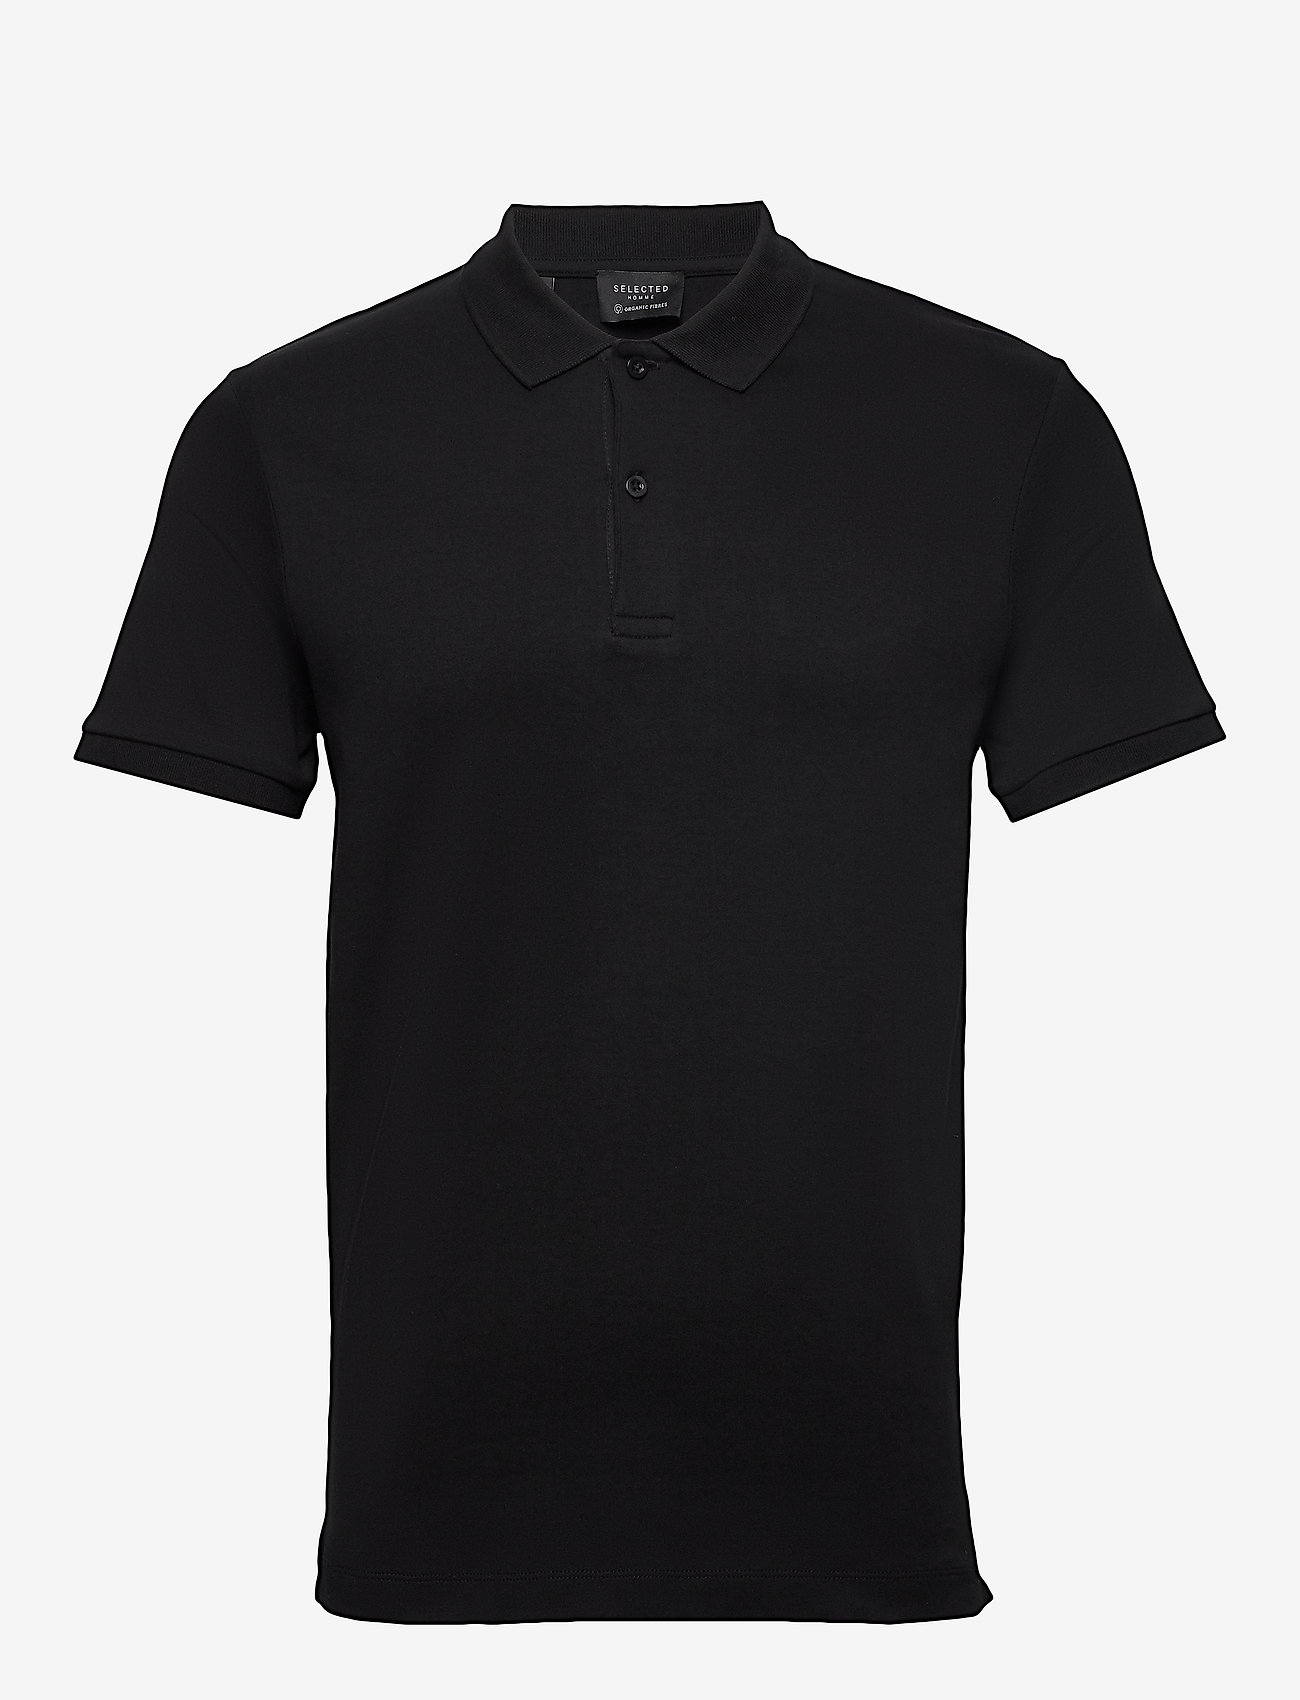 Selected Homme - SLHPARIS SS POLO B NOOS - kurzärmelig - black - 0